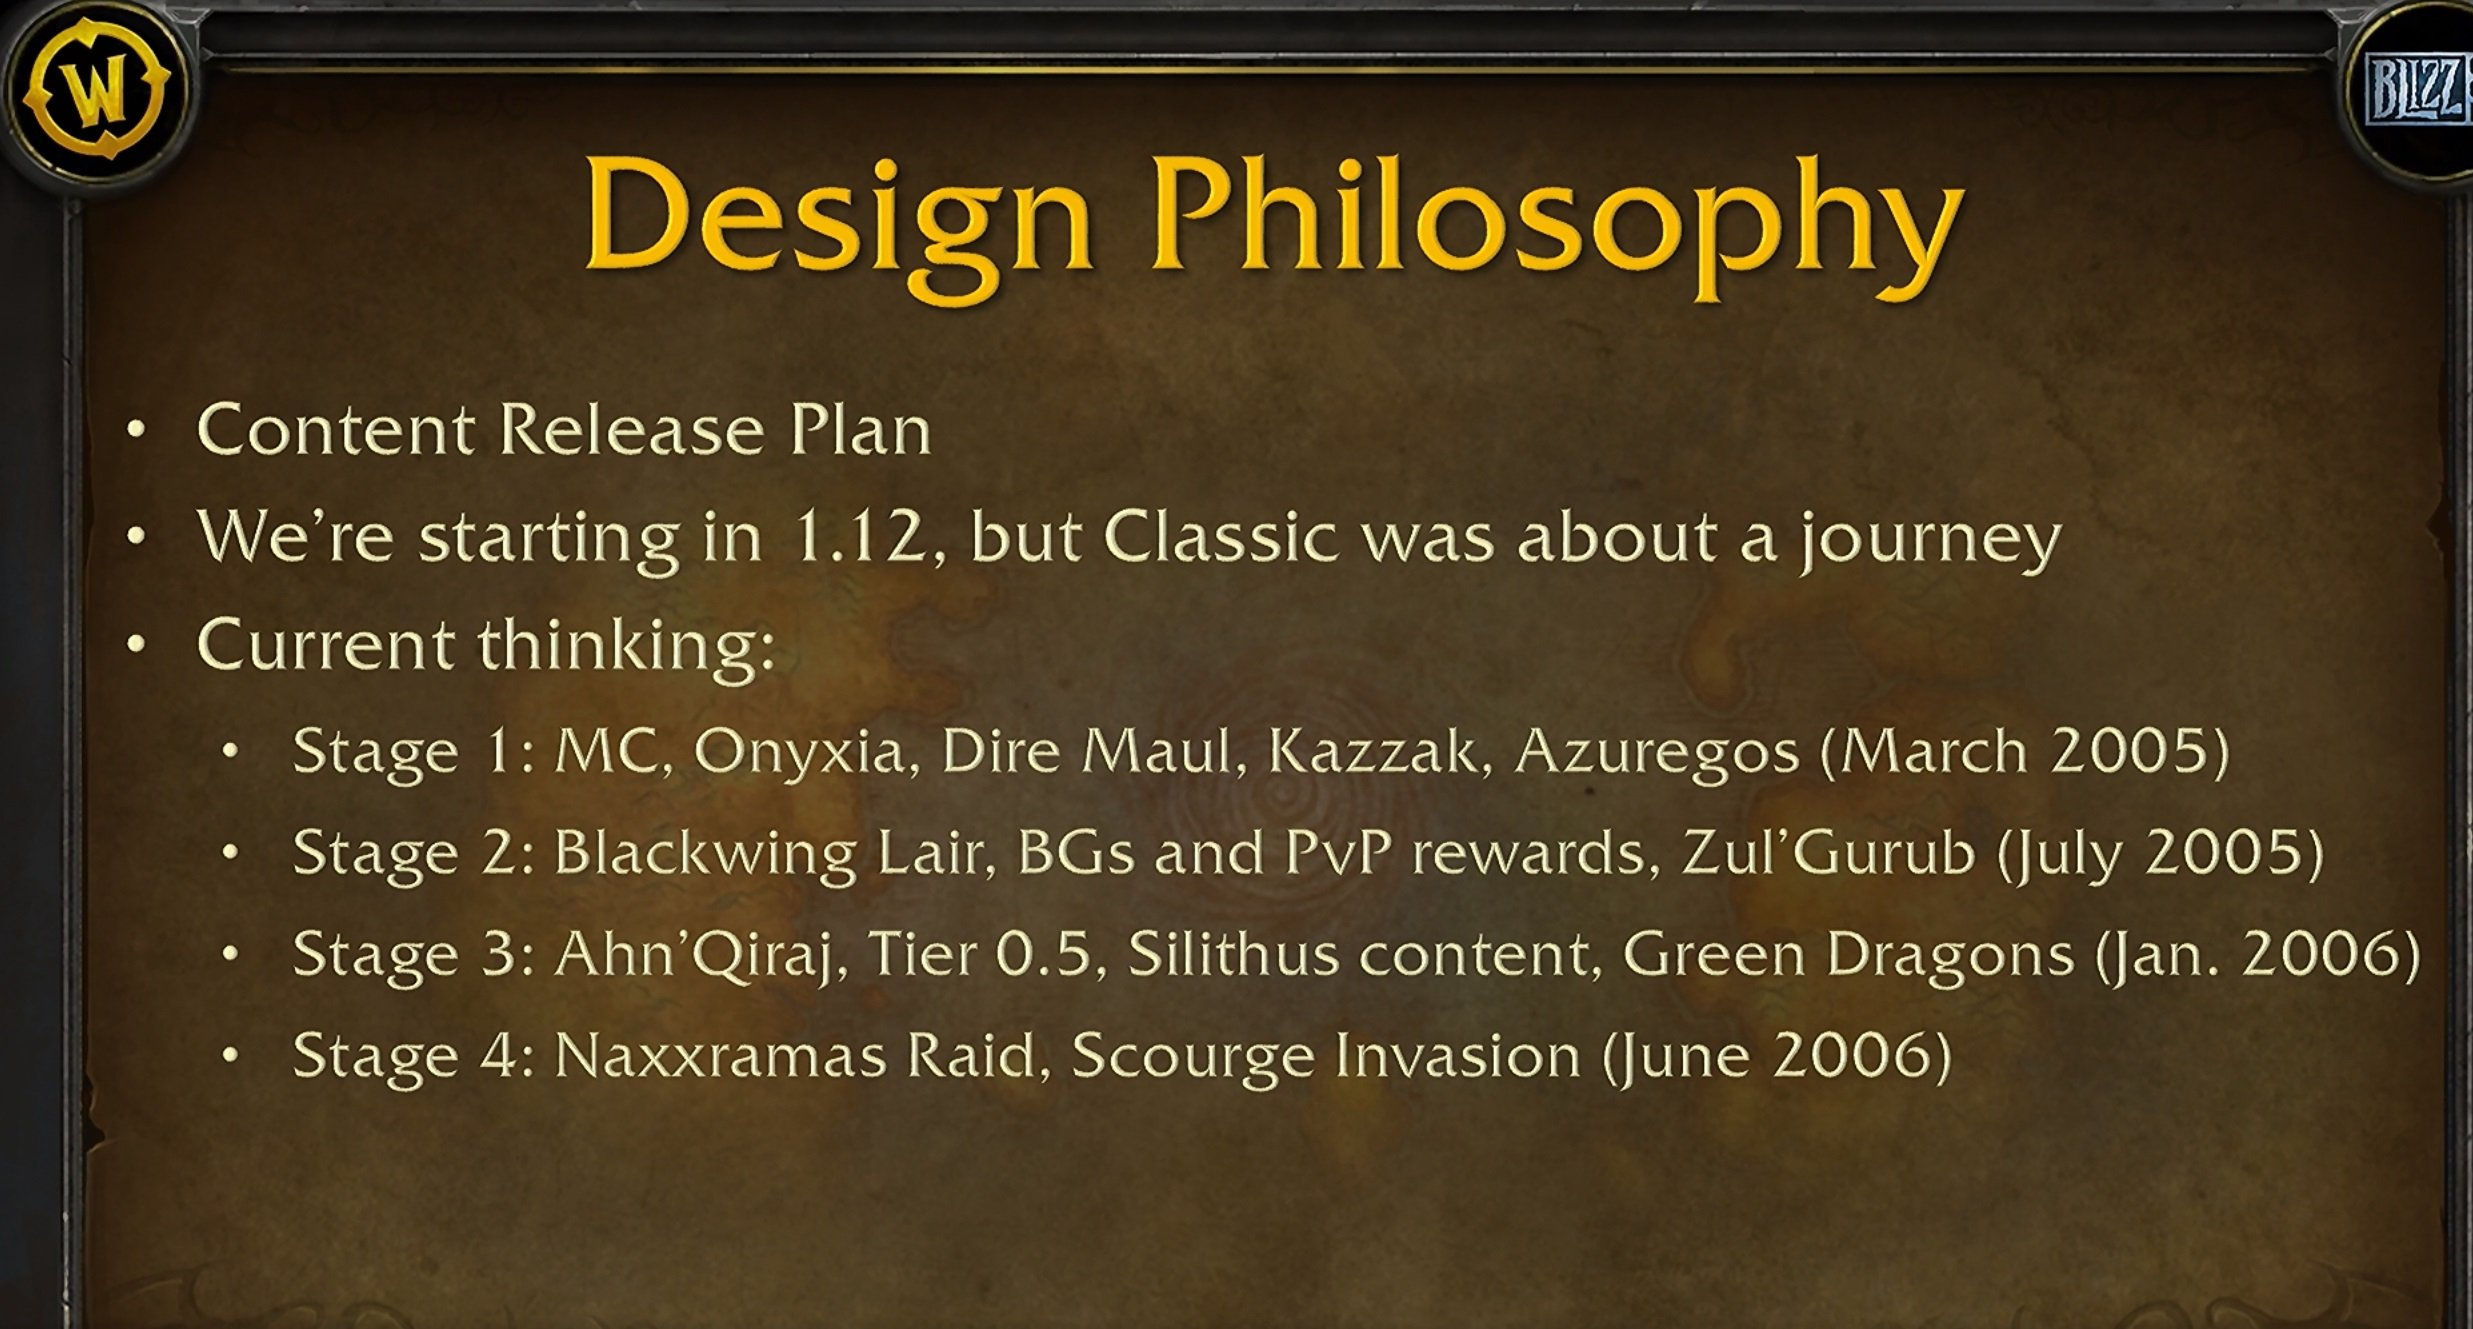 Blizzard details its content release plan for World of